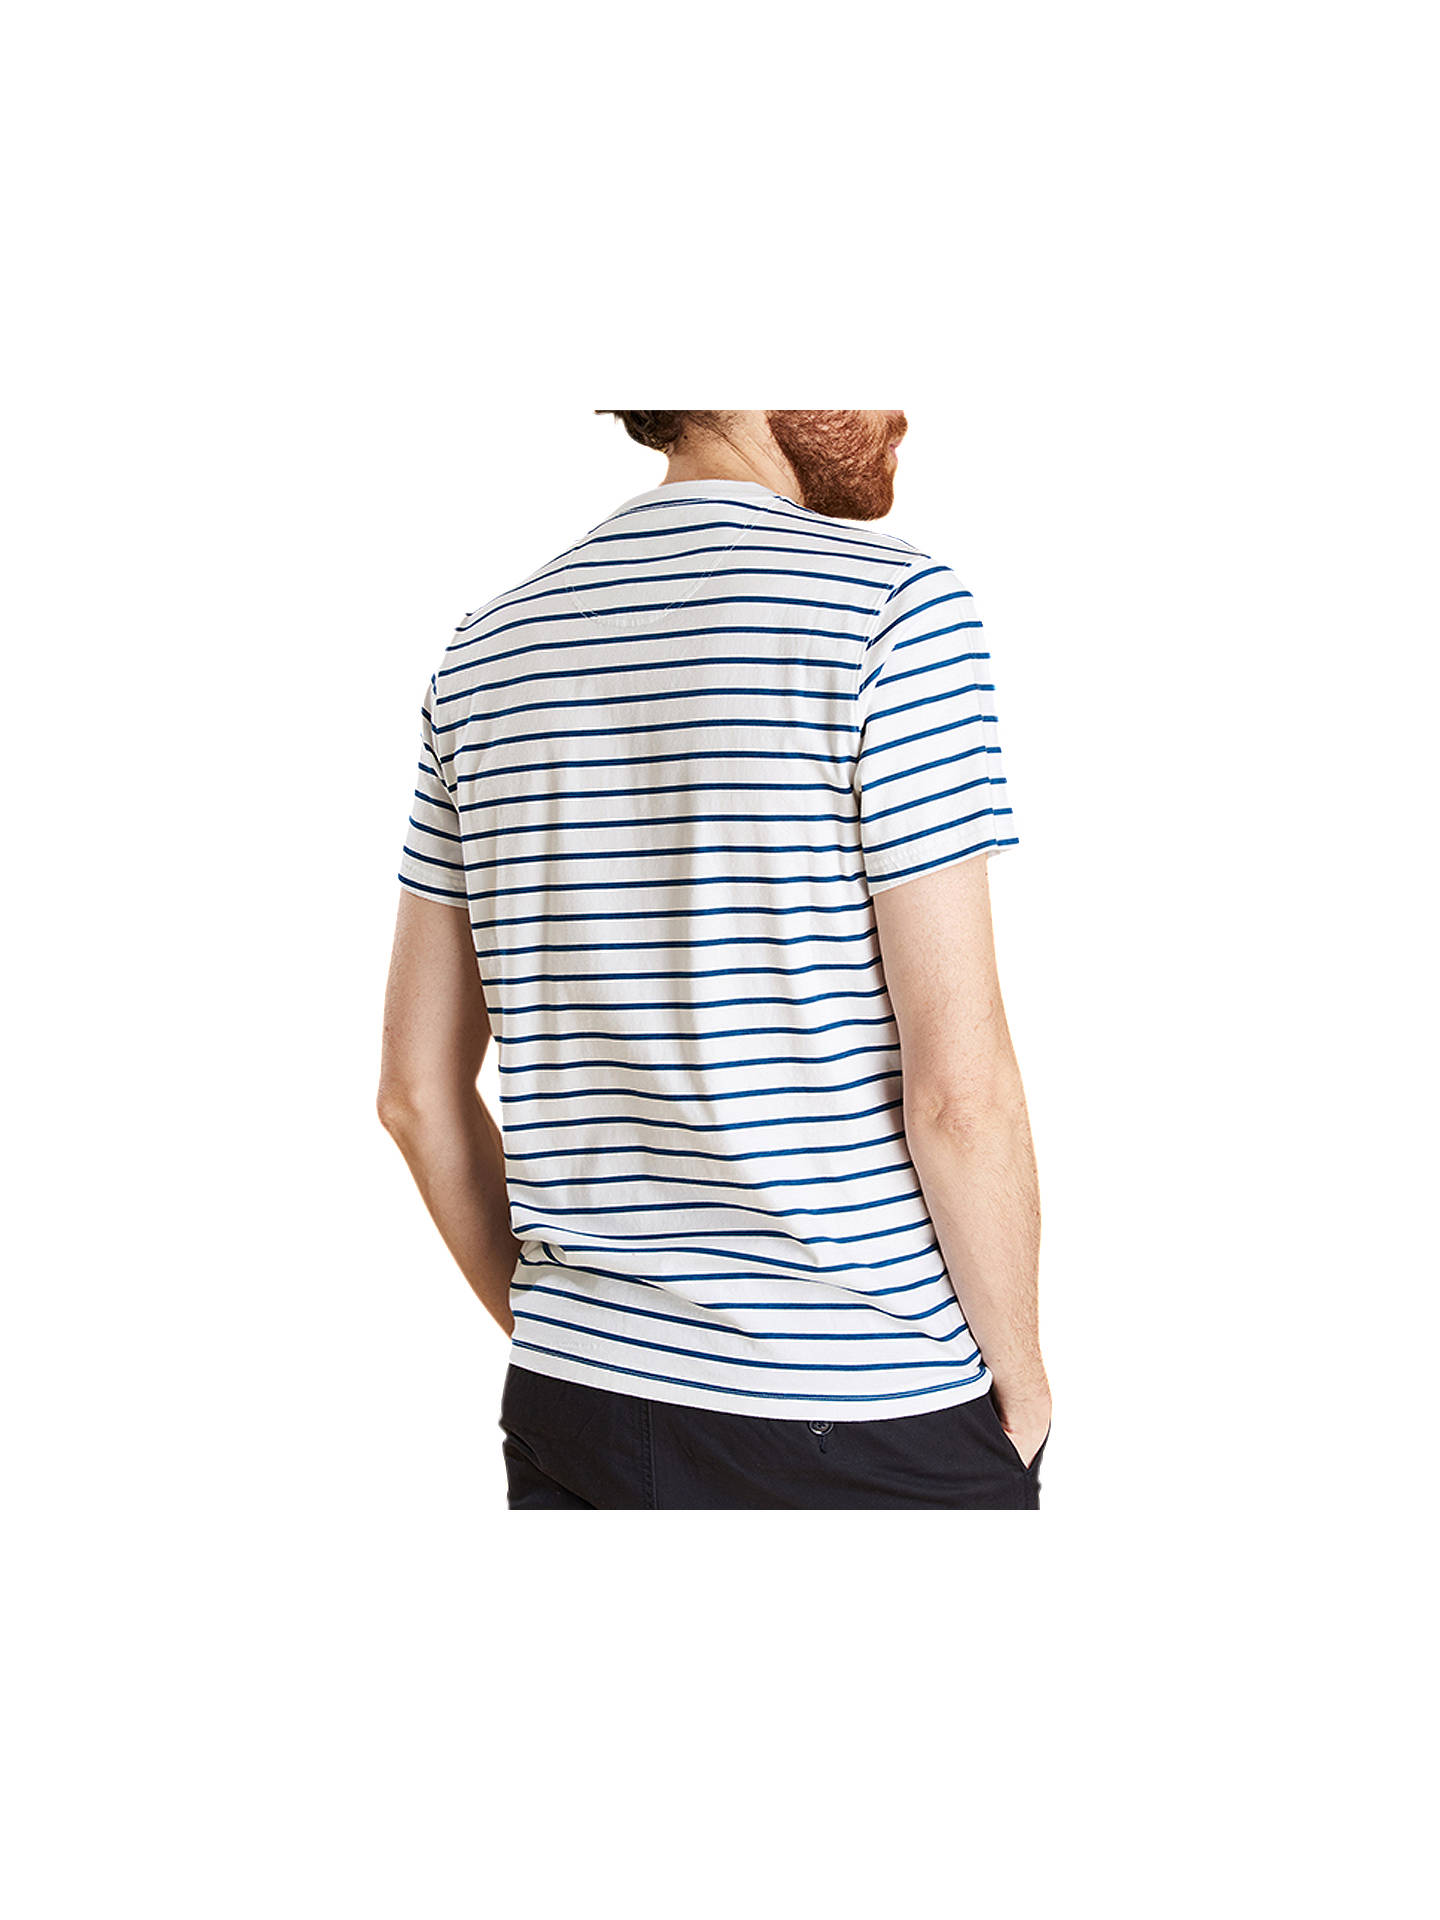 BuyBarbour Tow Stripe T-Shirt, White, M Online at johnlewis.com